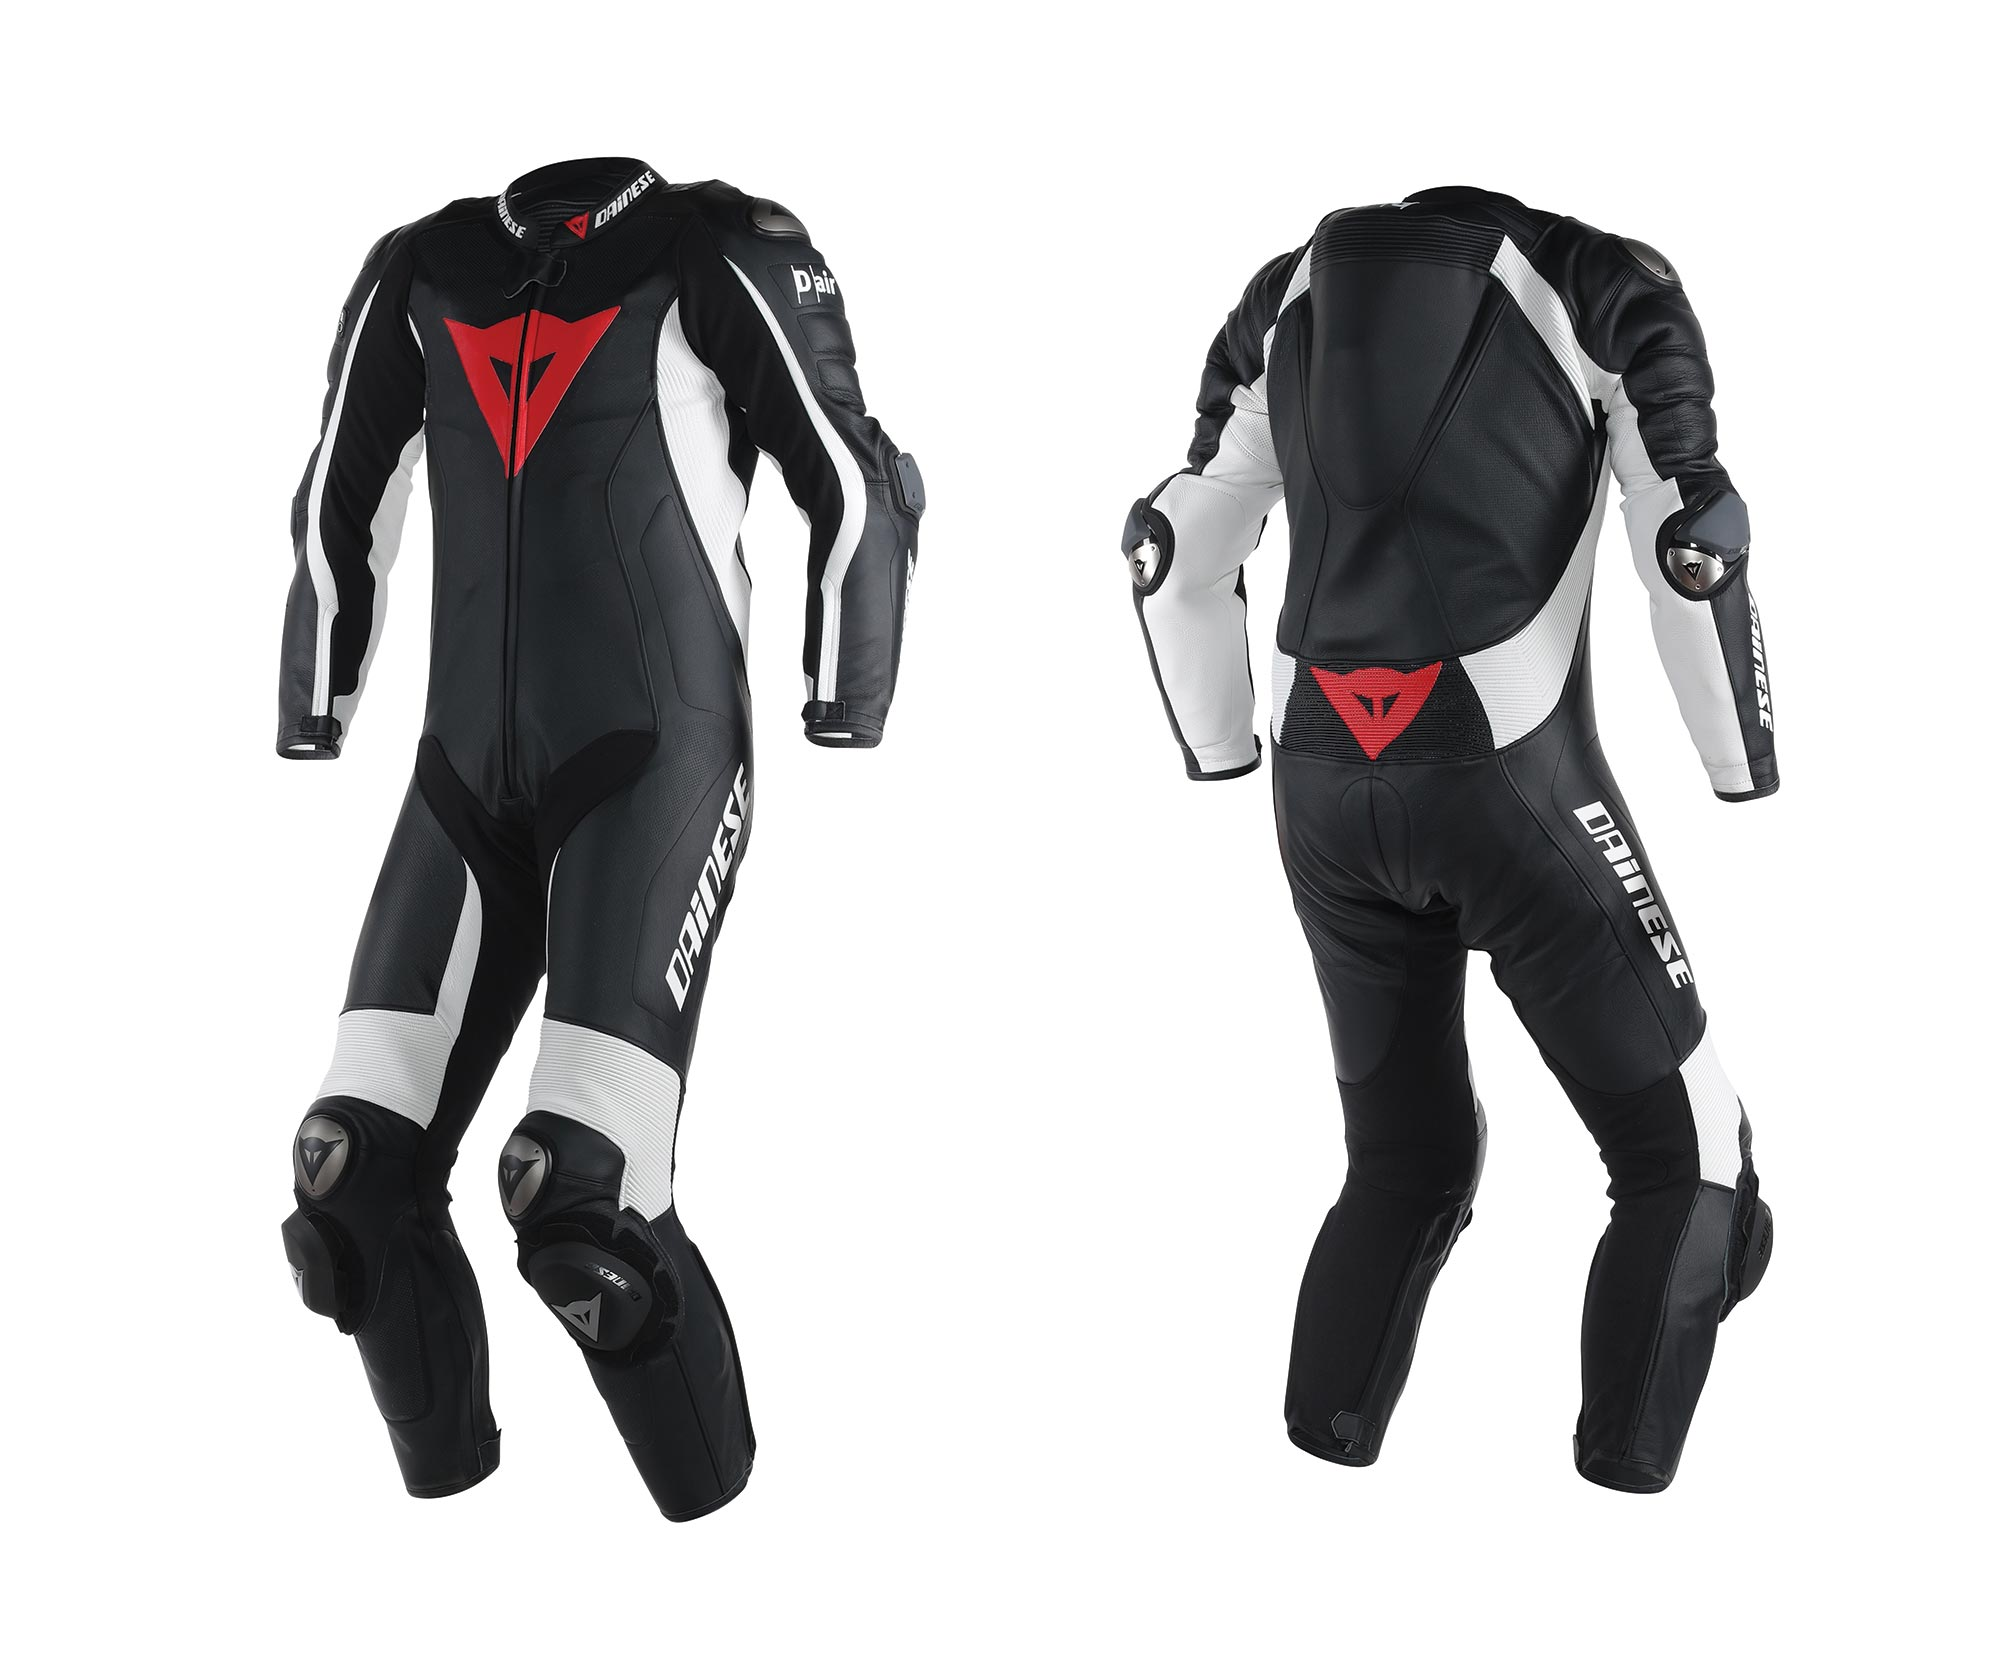 dainese d air racing suits coming to the usa asphalt rubber. Black Bedroom Furniture Sets. Home Design Ideas